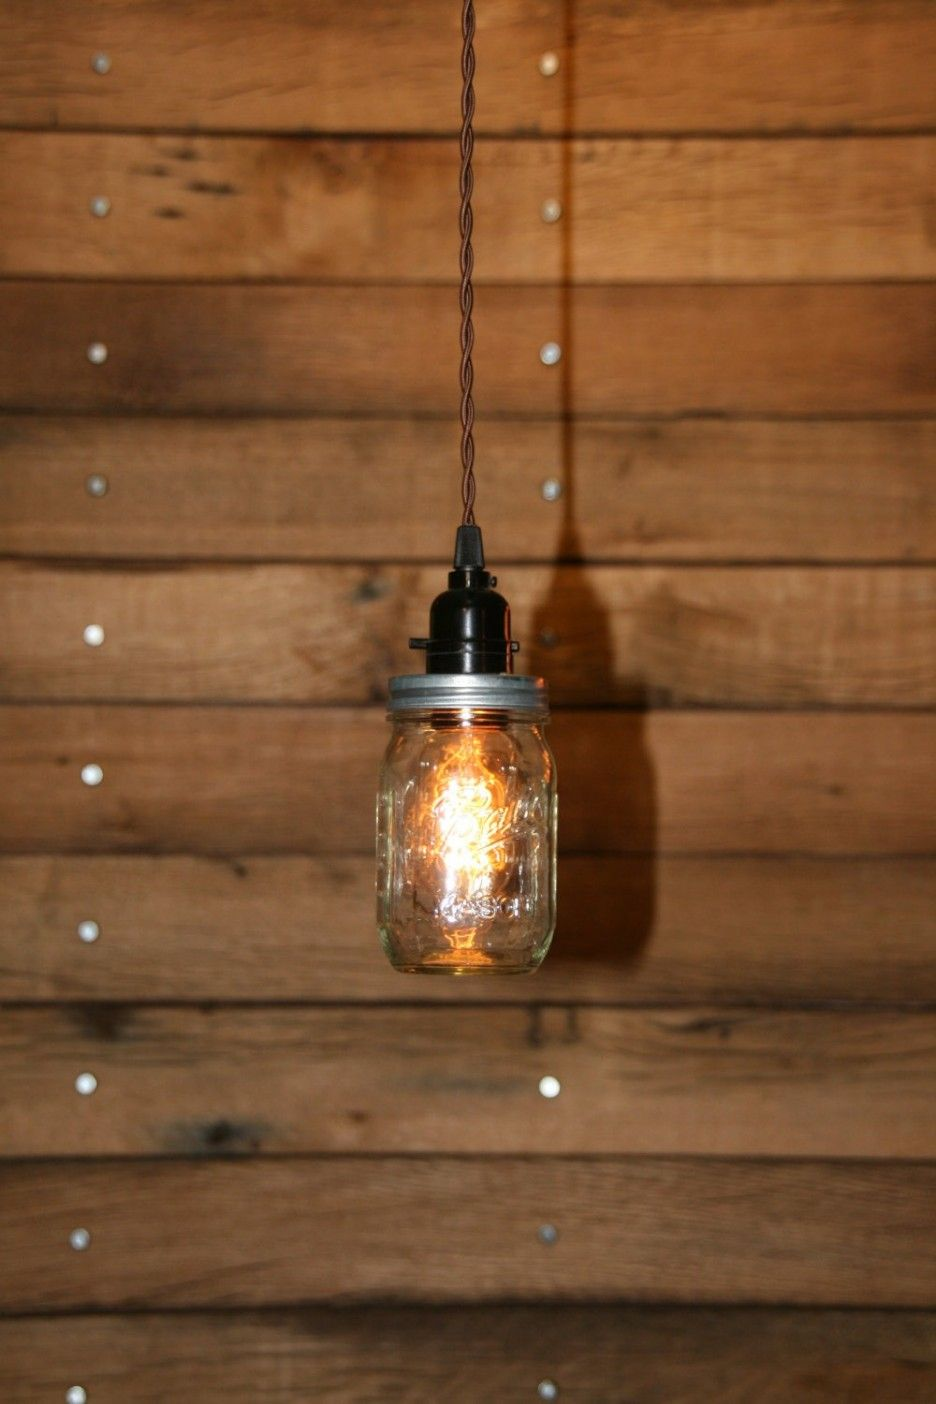 Lighting delectable design home mason jar pendant lights ideas ball jar pendant light mason jar light hanging mason jar hanging pendant light clear pint swag light by industrialrewind on easyde with red aloadofball Gallery